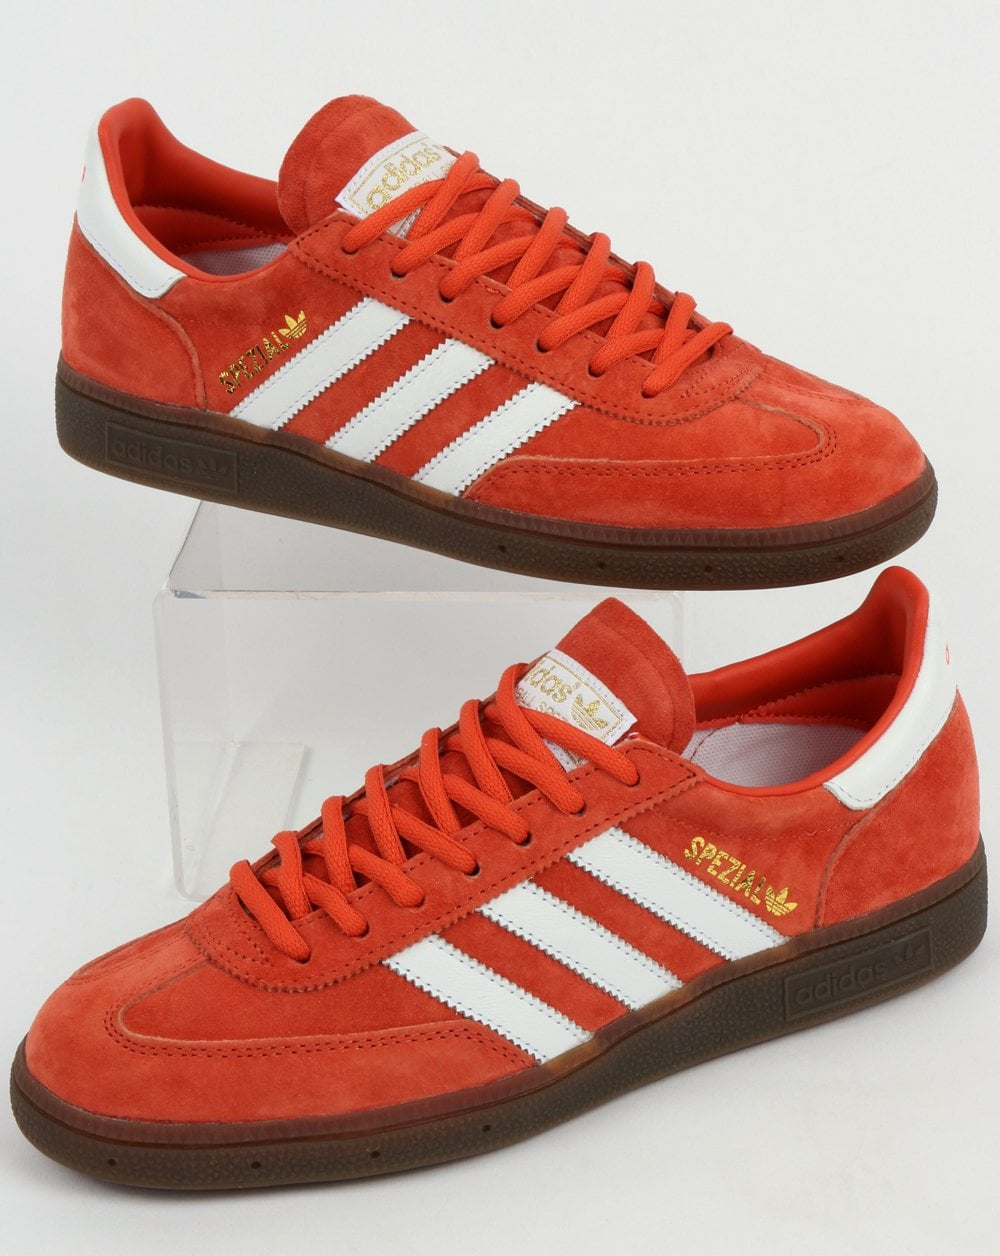 adidas spezial red Online Shopping for